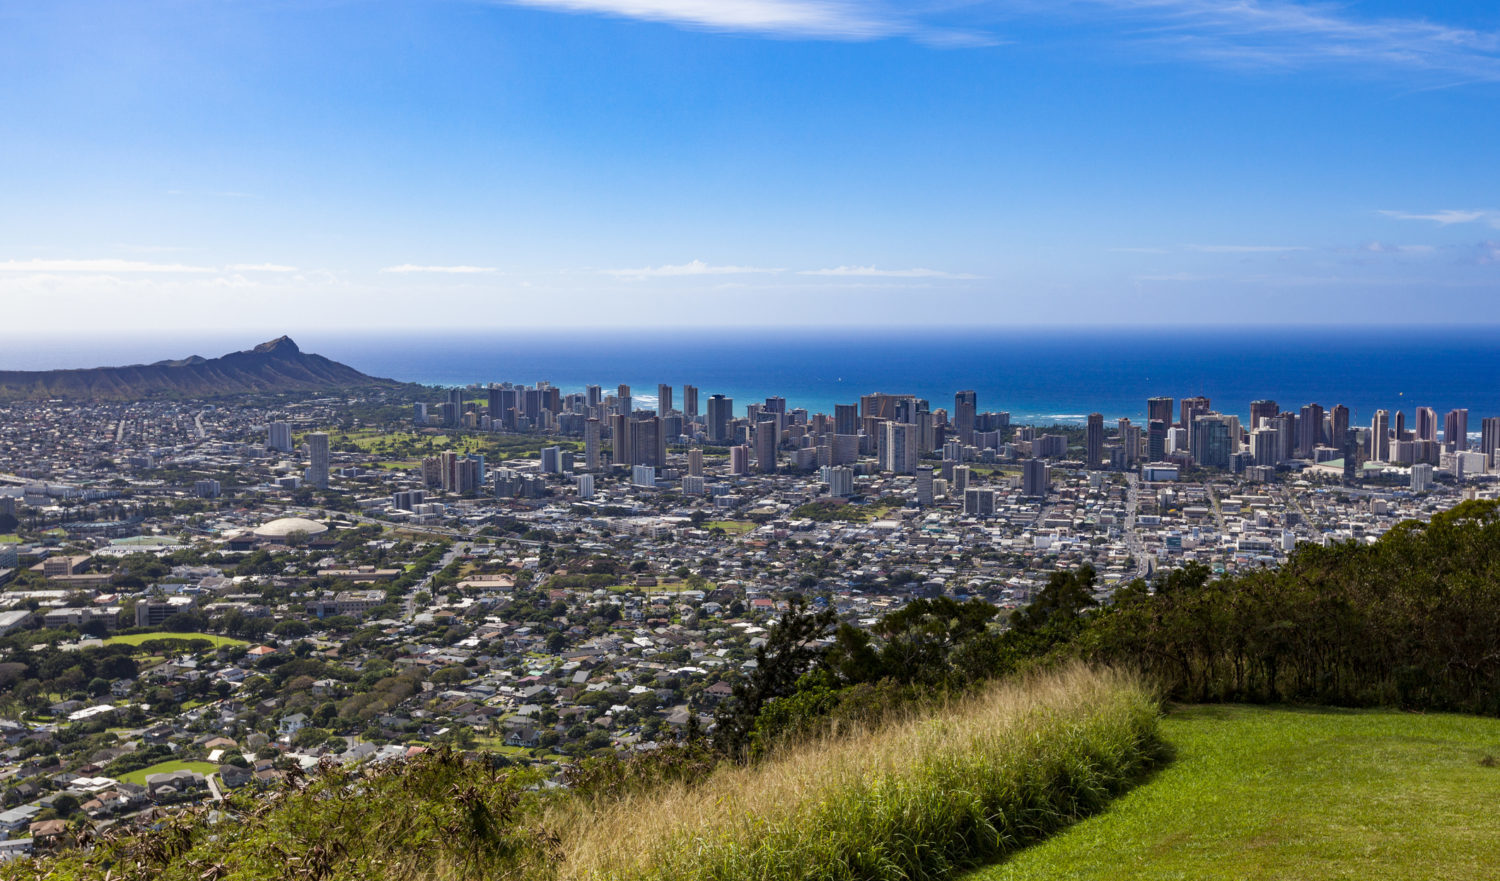 beautiful look over downtown honolulu, diamond head crater and the pacific ocean, oahu island, hawaii islands.